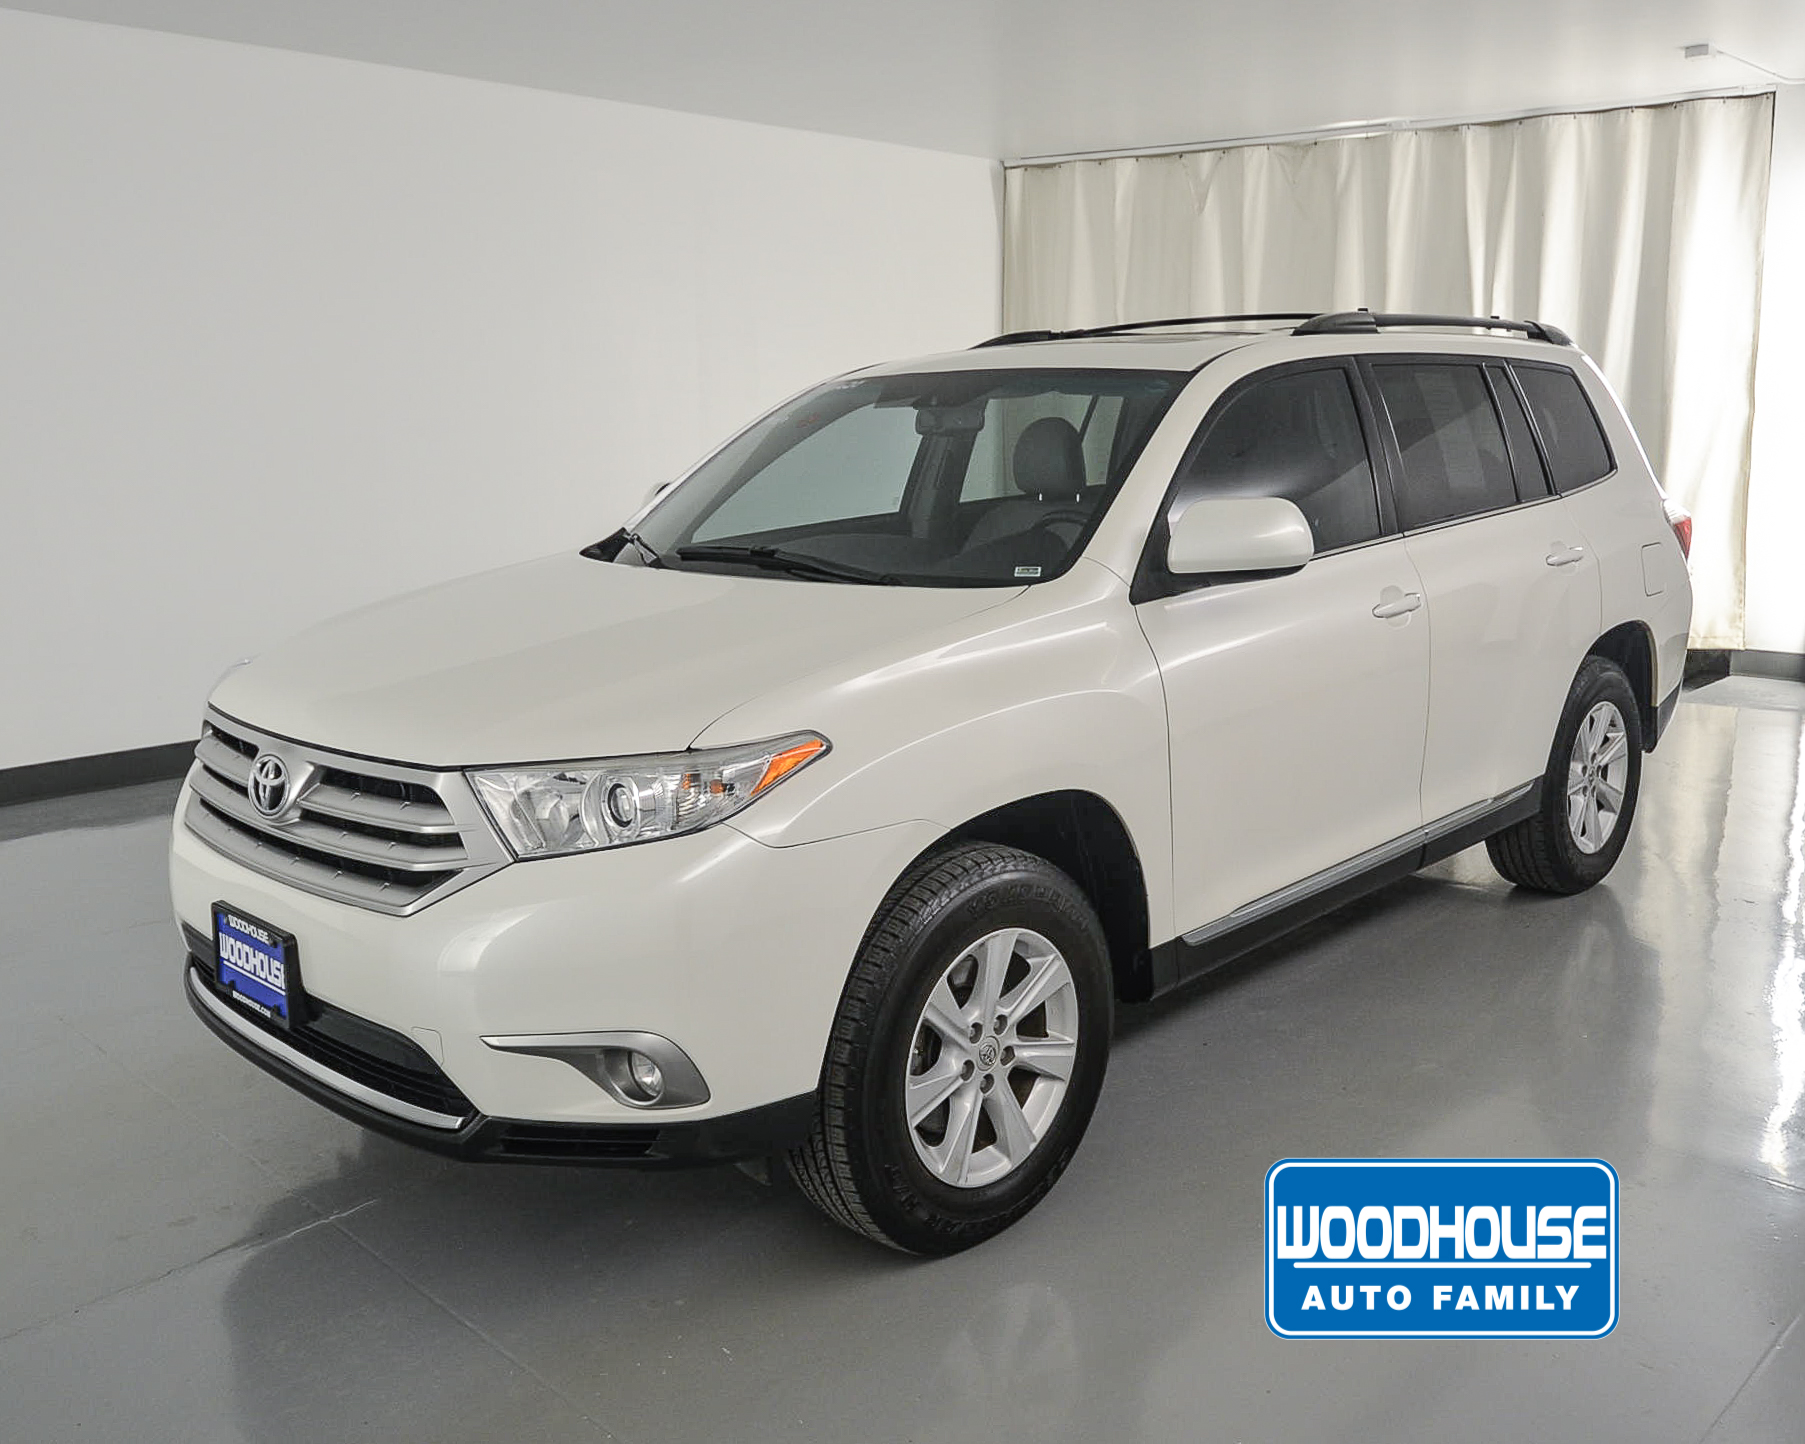 2013 Toyota Highlander For Sale >> Woodhouse Used 2013 Toyota Highlander For Sale Chevy Buick